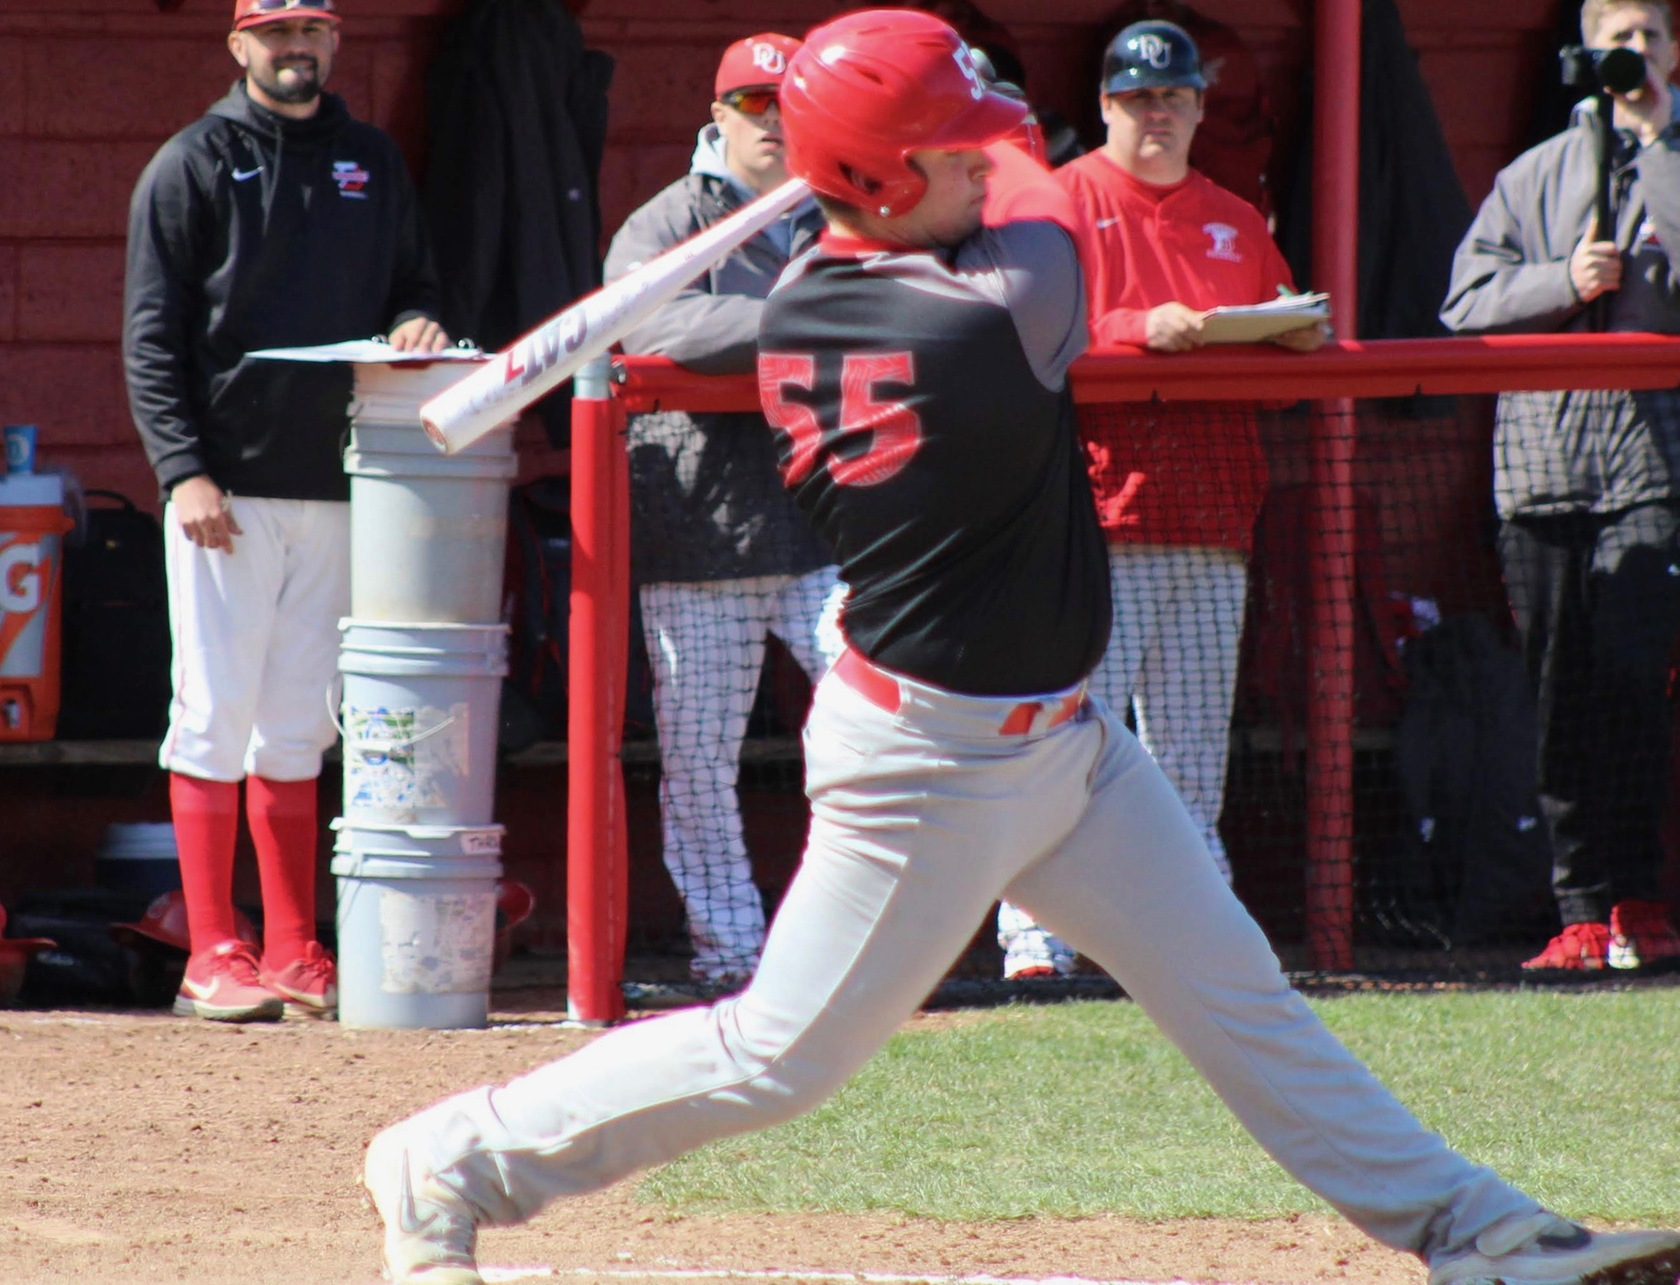 Sophomore Jack Hollinshead blasted three homers in the Tigers' 15-3 game one victory over Wabash on Wednesday